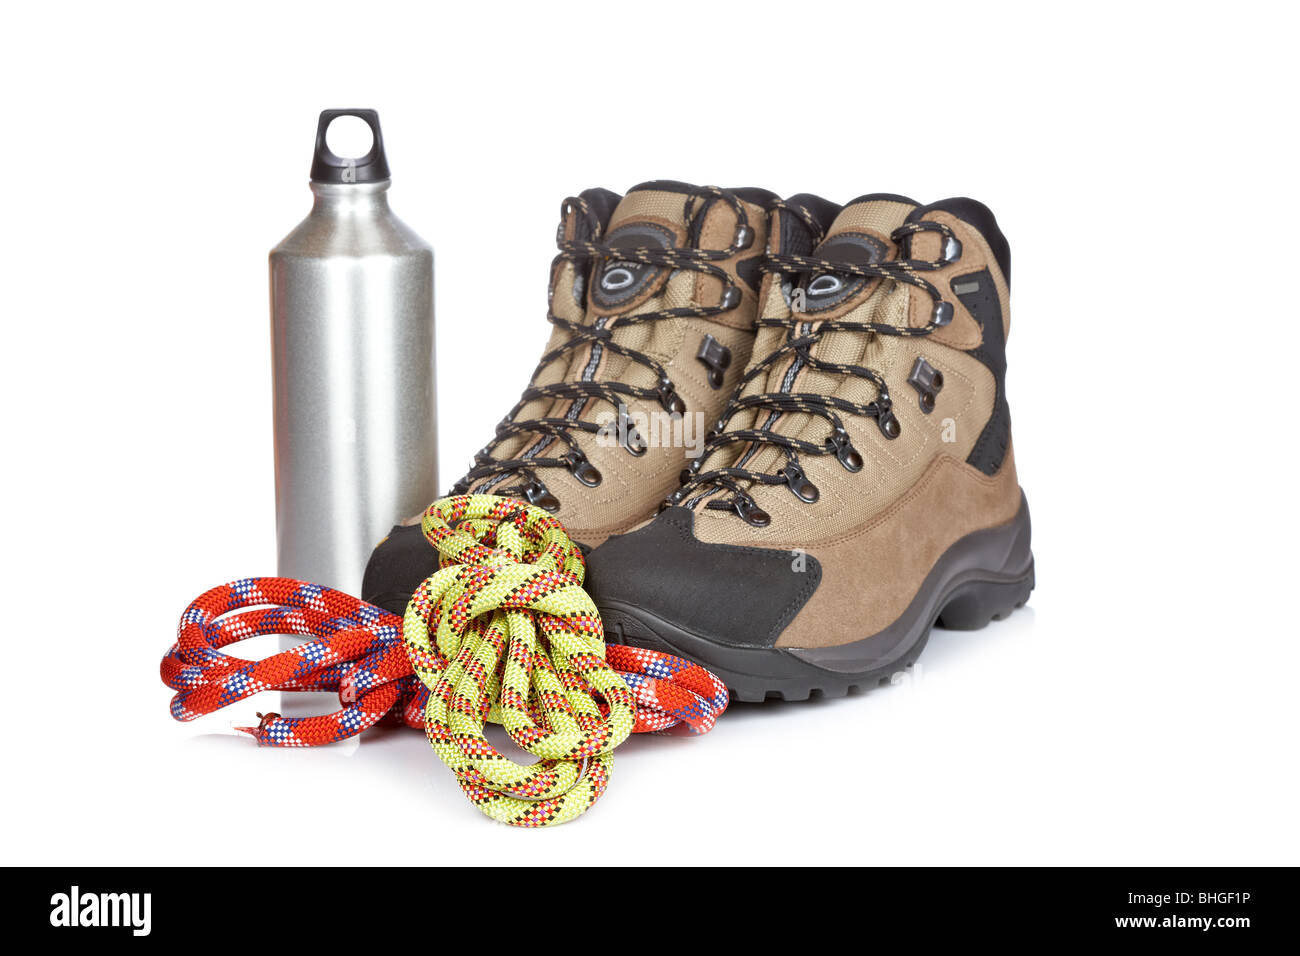 Hiking boots, canteen and ropes reflected on white background. Shallow depth of field - Stock Image